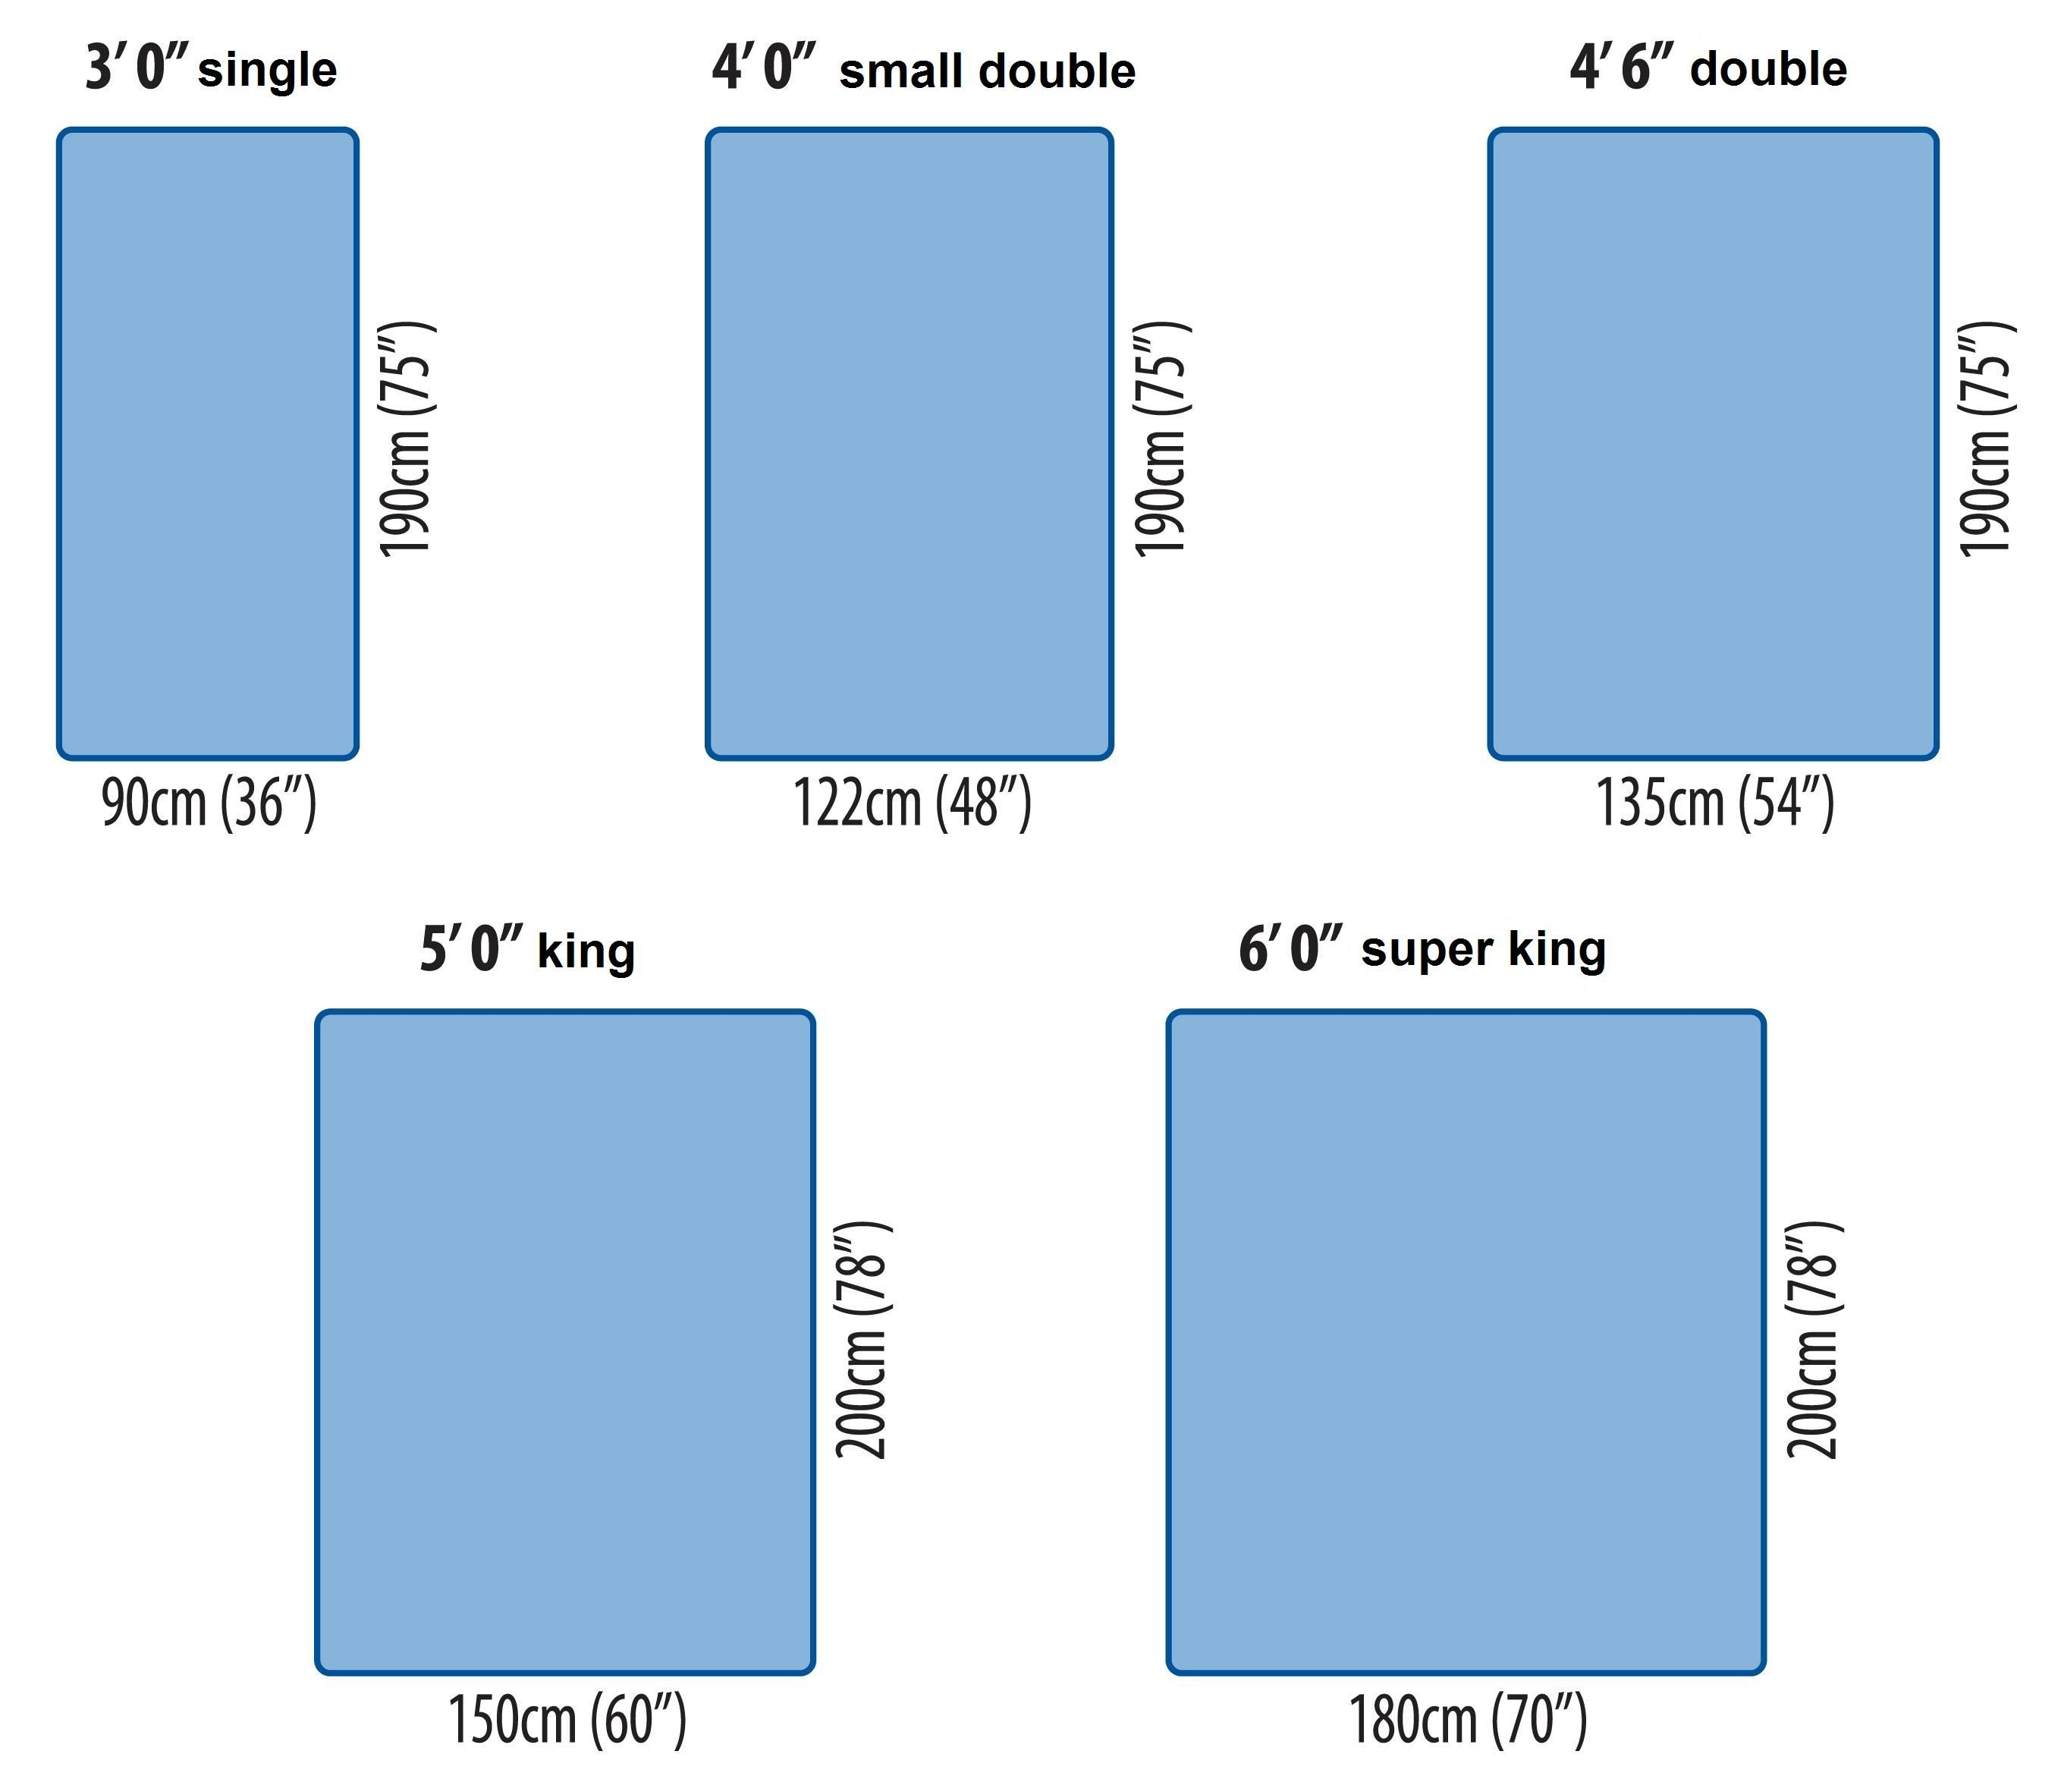 Bed Sizes Are Confusing Bed Sizes Confused And Bedrooms: bed sizes